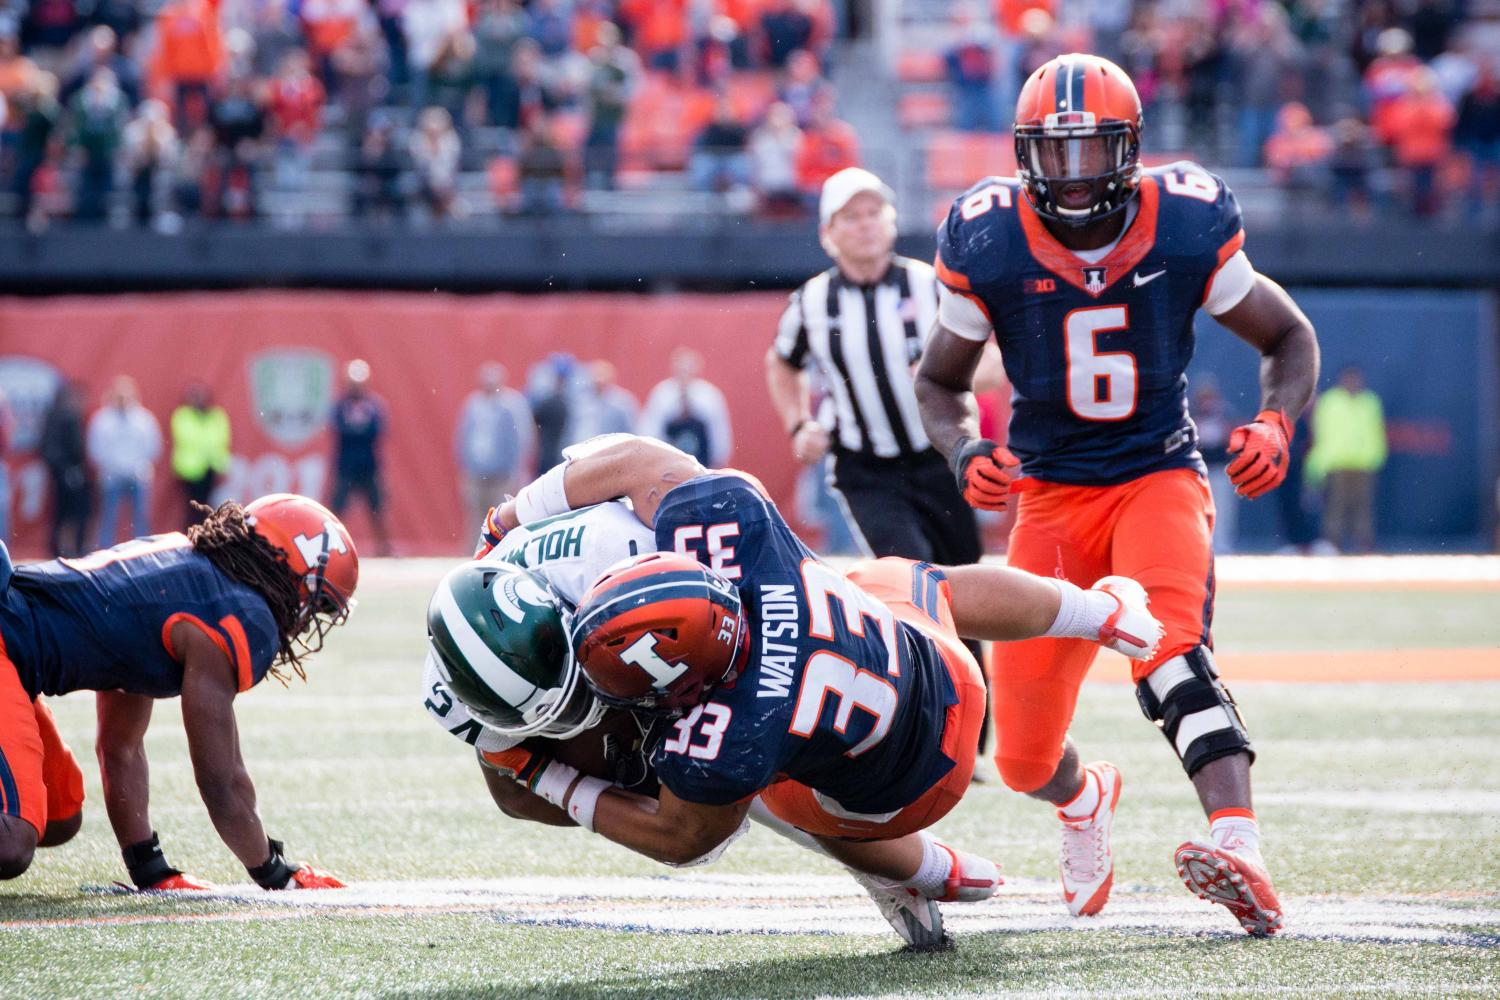 Illinois linebacker Tré Watson (33) tackles Michigan State running back Gerald Holmes (24) during the game against at Memorial Stadium on Saturday, November 5. The Illini won 31-27.